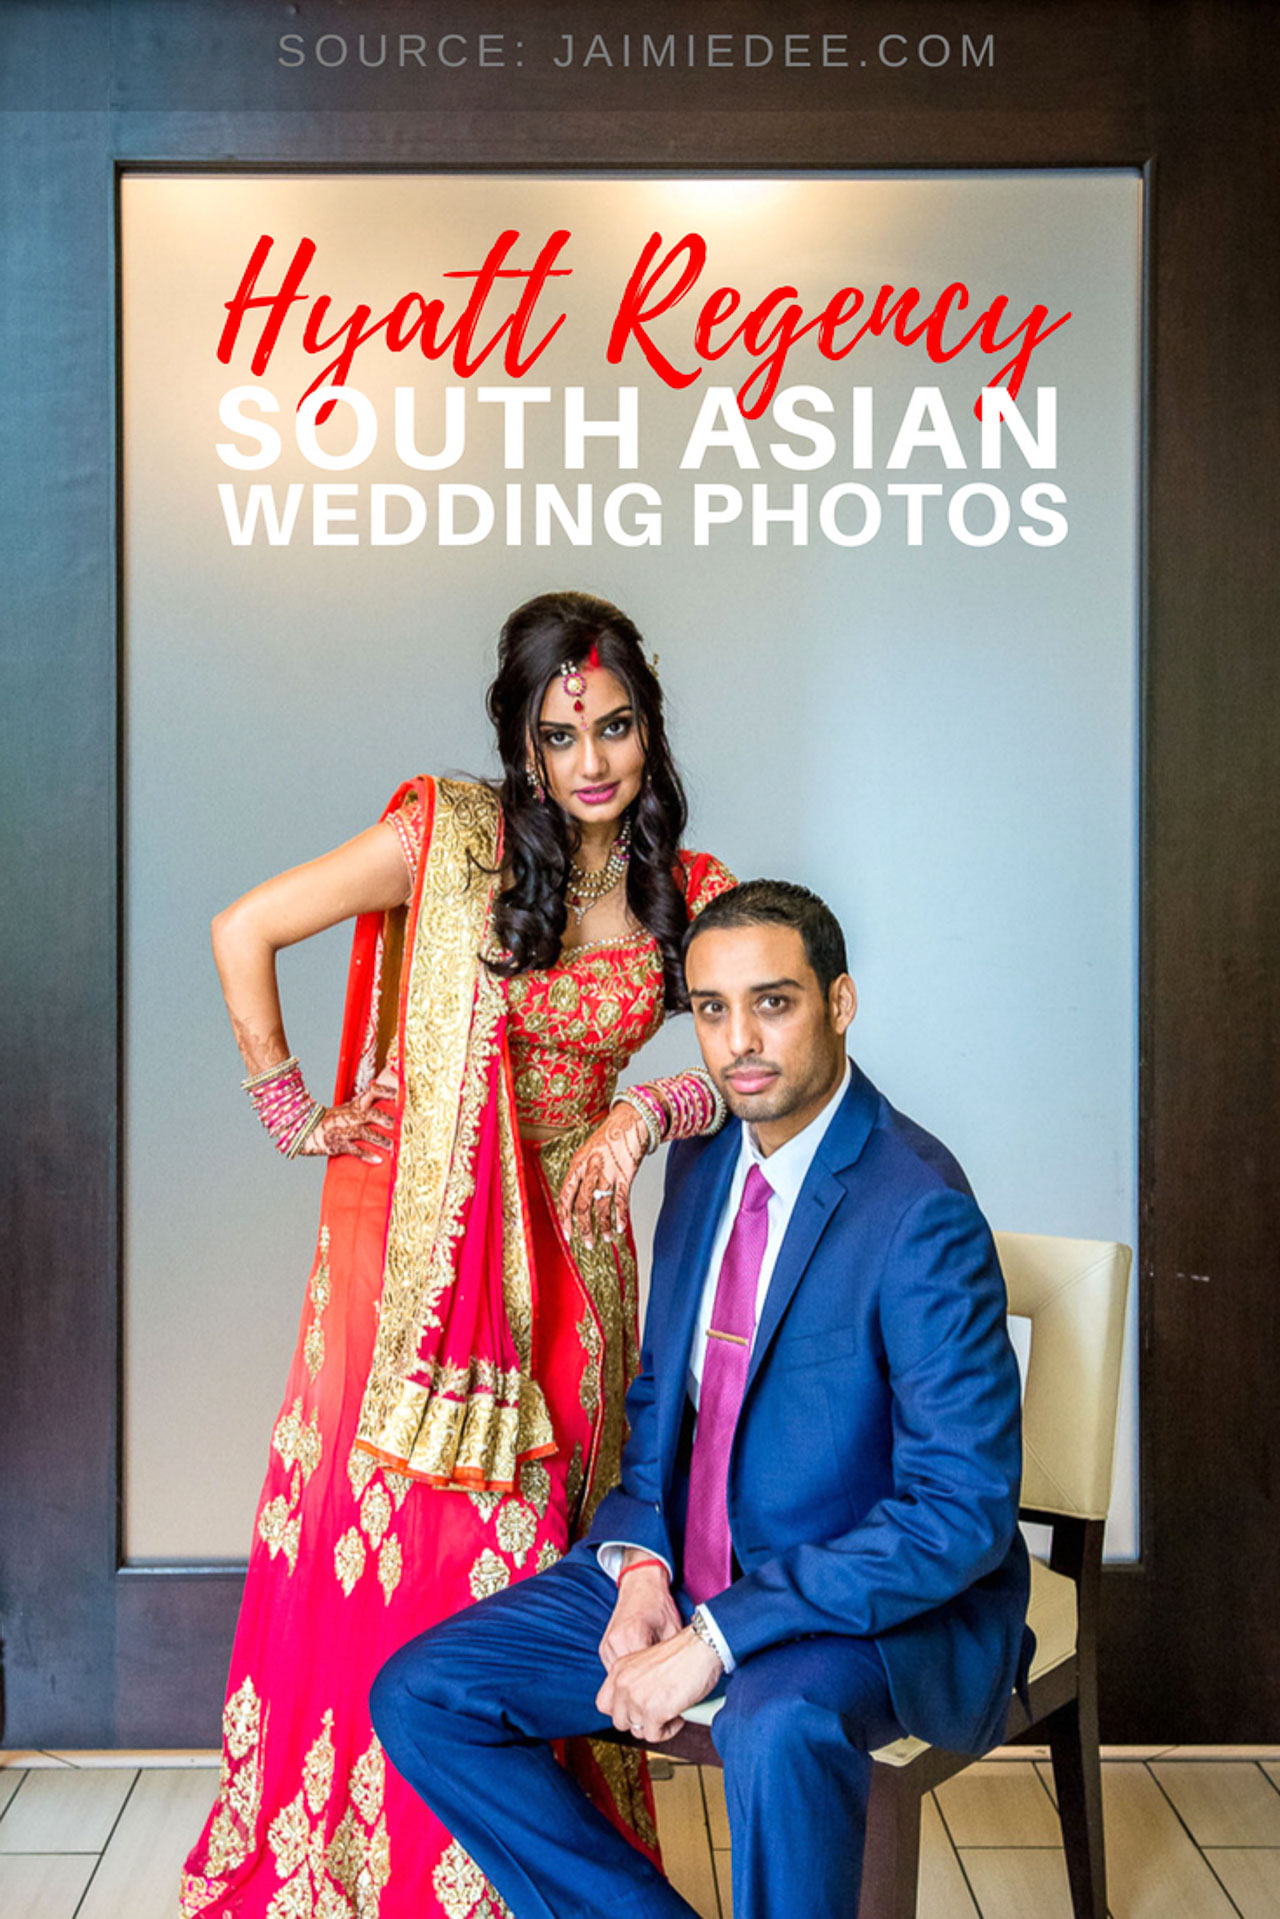 Hyatt-Regency-Suites-Atlanta-Northwest-Indian-Wedding-Cover-0001